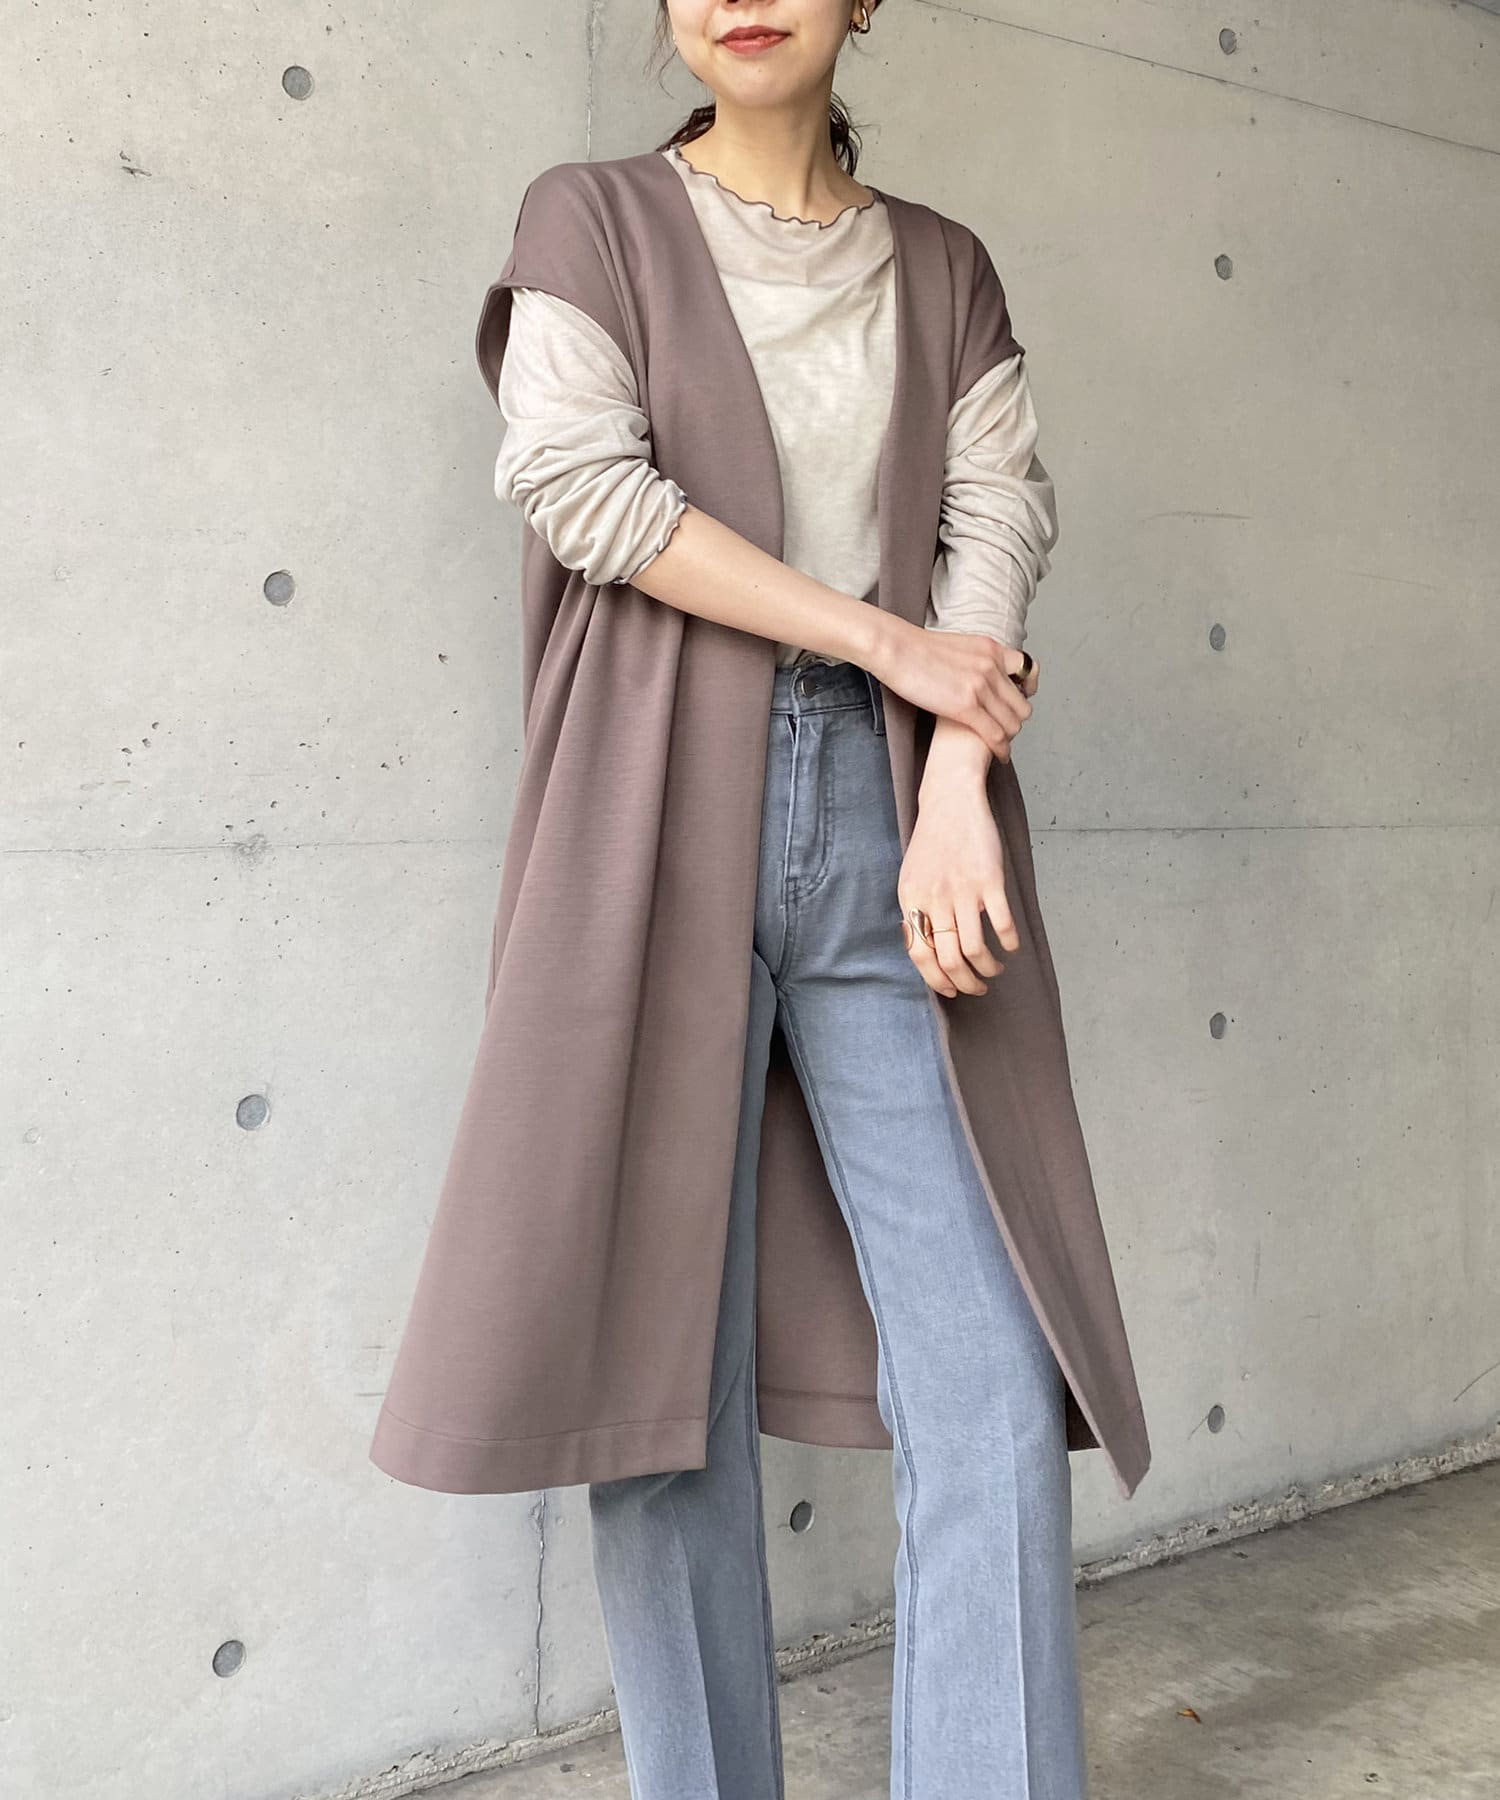 OUTLET(アウトレット) 【CAPRICIEUX LE'MAGE】コートinダンボールジレ